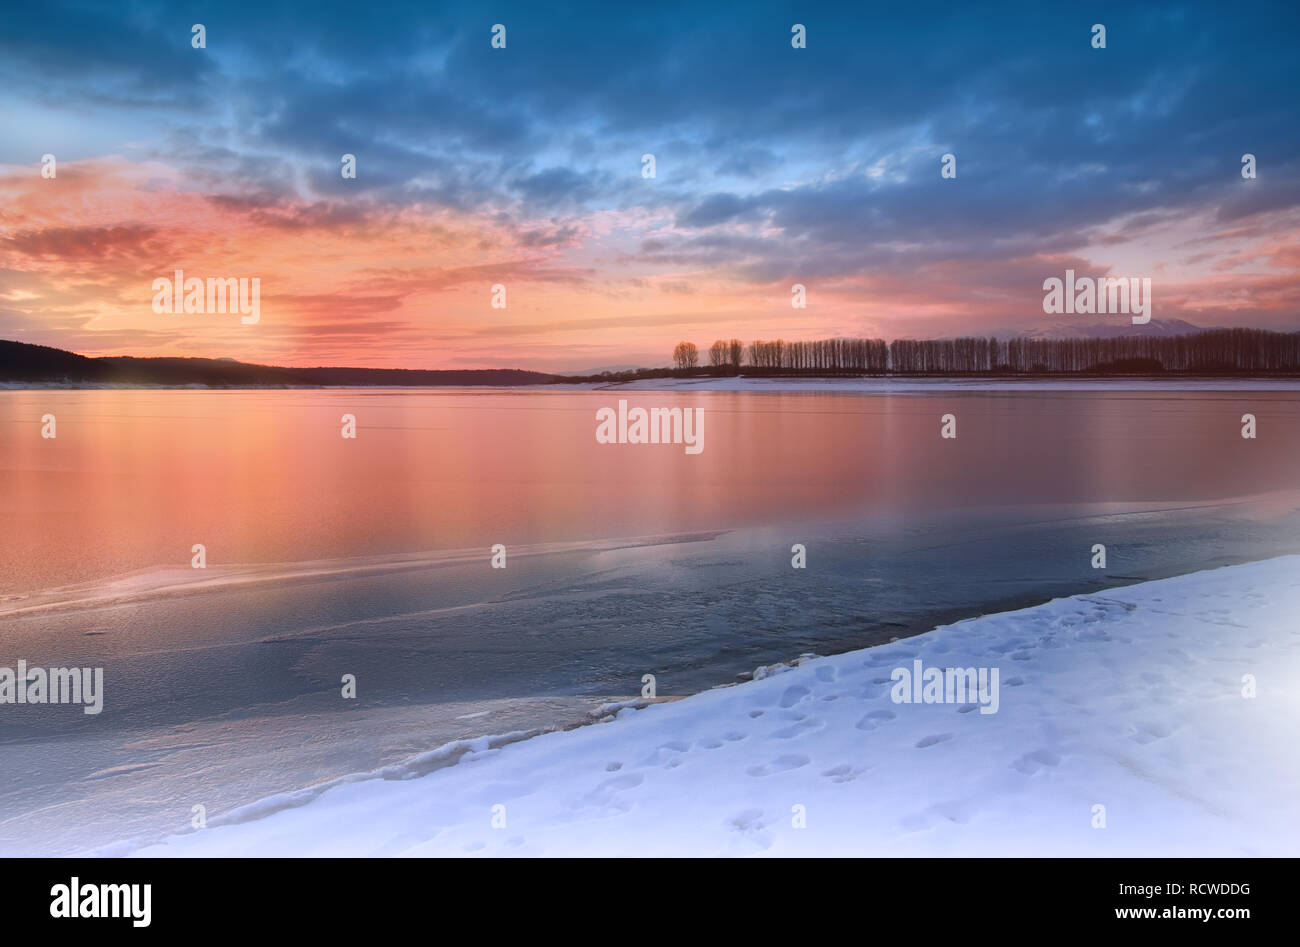 Nature Landscape Website Banner Beautiful High Resolution Stock Photography And Images Alamy